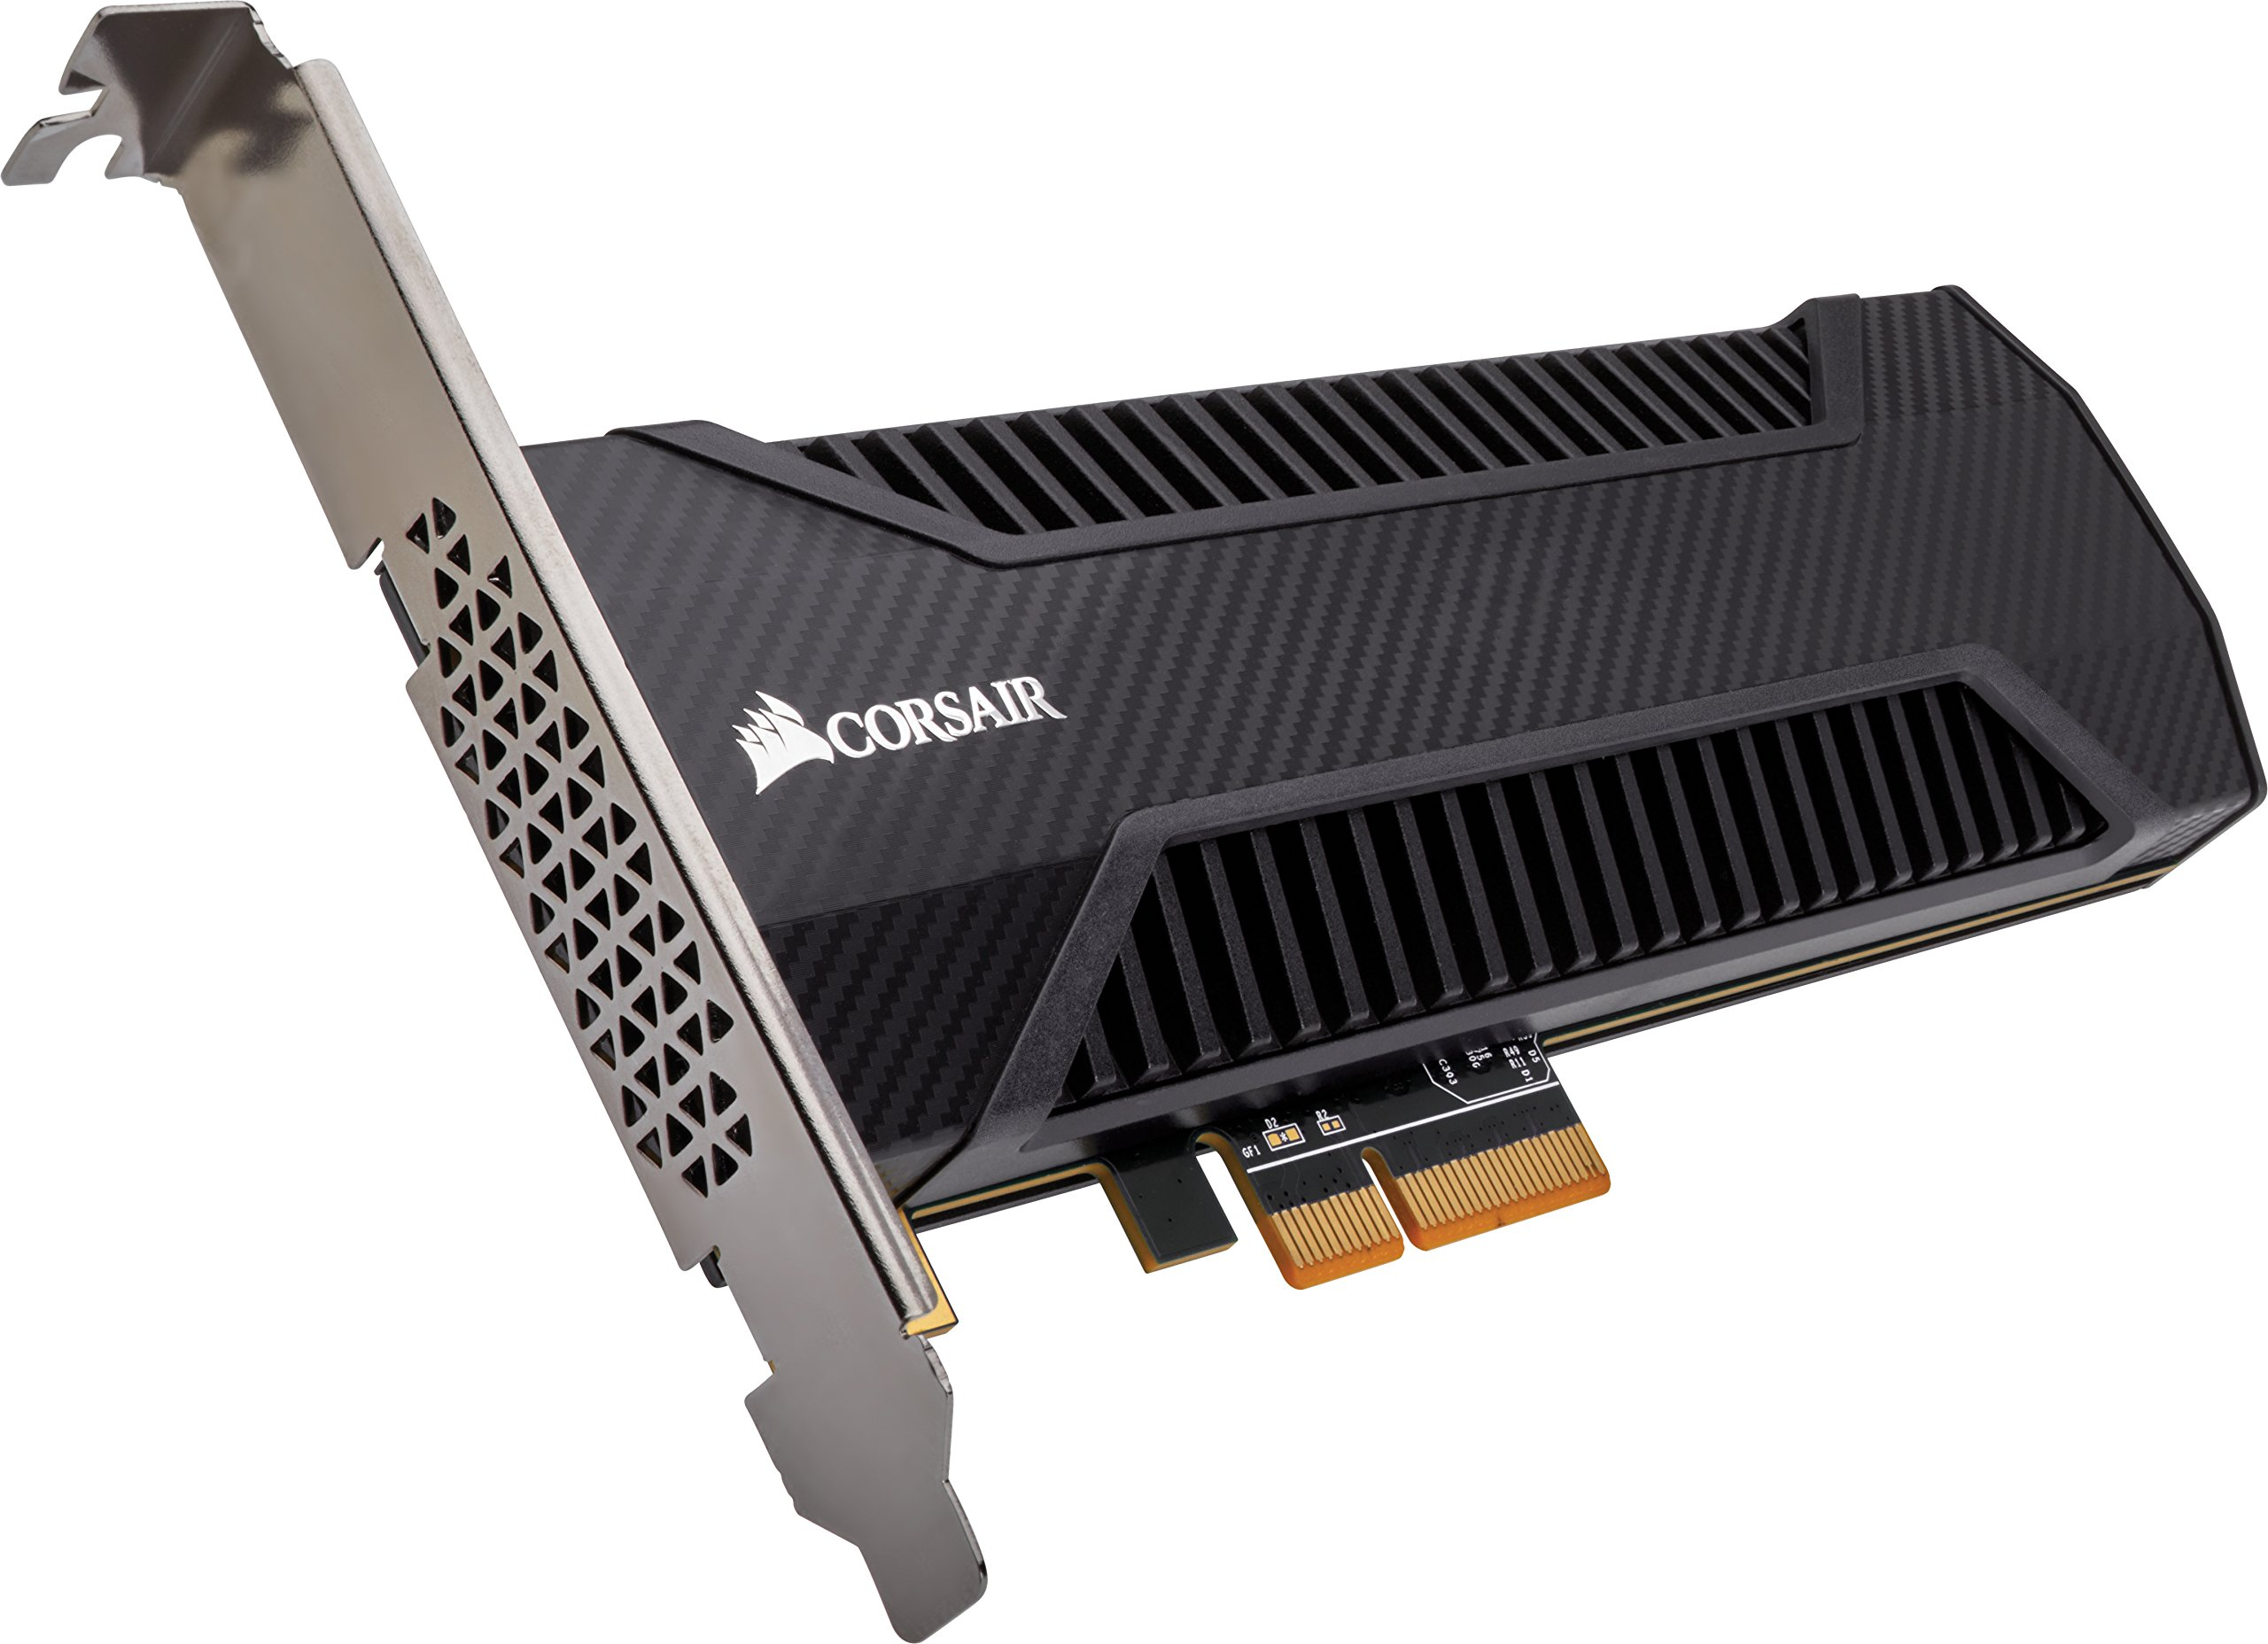 Corsair Neutron Series NX500 400GB Add in Card NVMe PCIe 3.0 x 4 SSD with Heatsink by Corsair